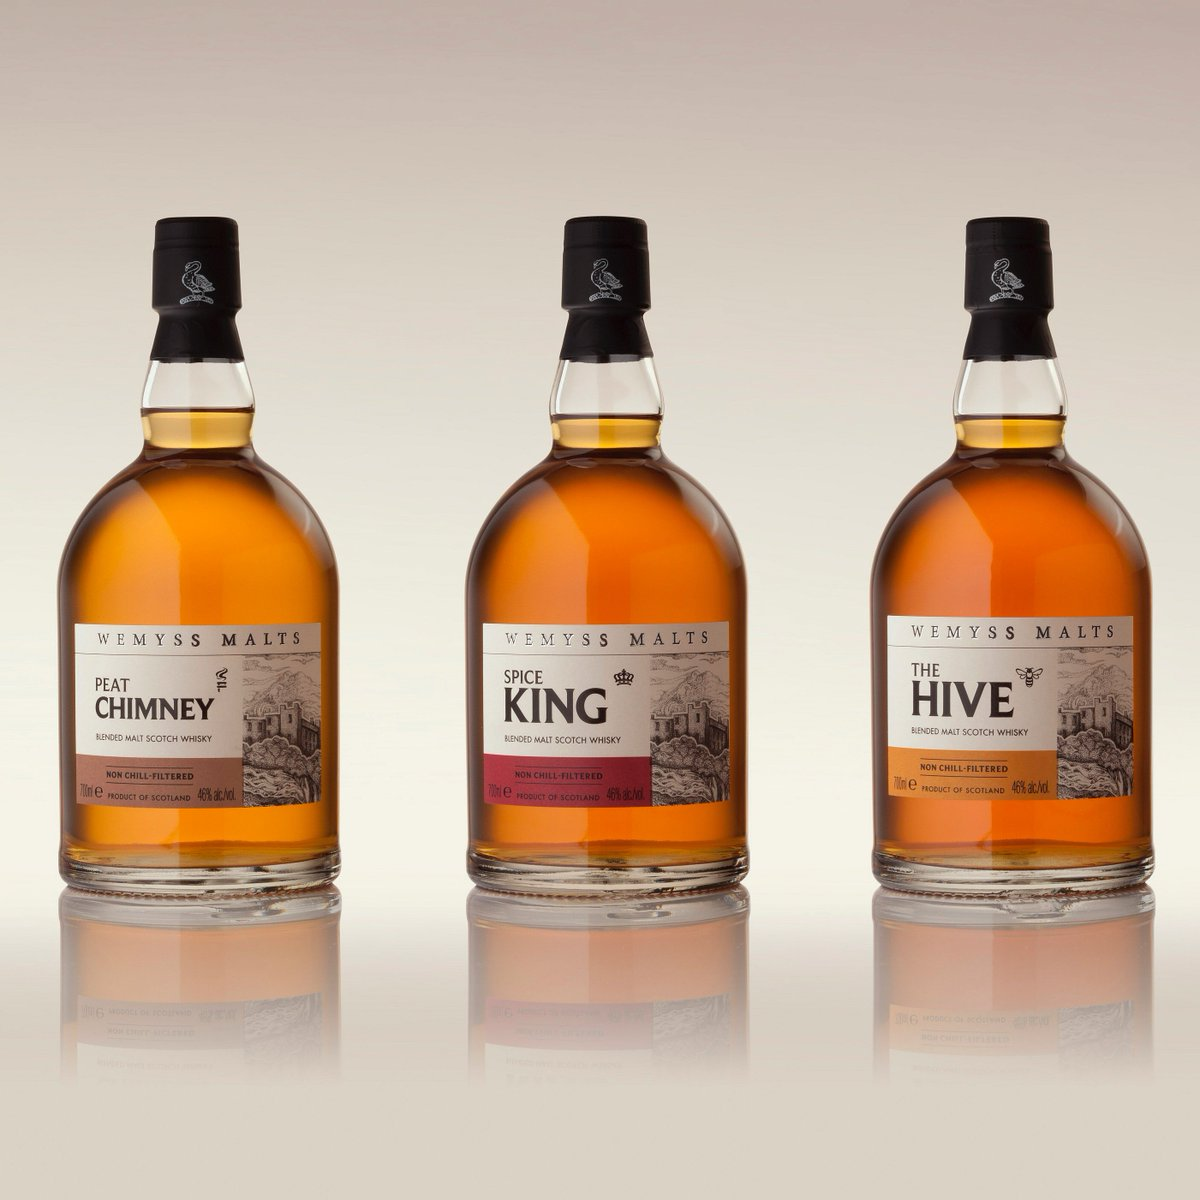 Join us Monday, 4/23, when @WemyssMalts Distillery owner, William Wemyss, is in house leading a scotch blending class. $15 ticket gets you snacks, your own scotch blending kit and all the #scotch knowledge. The fun starts at 7pm!  https:// m.bpt.me/event/3392011     #whisky #blendedscotch <br>http://pic.twitter.com/e0kjYn90PM